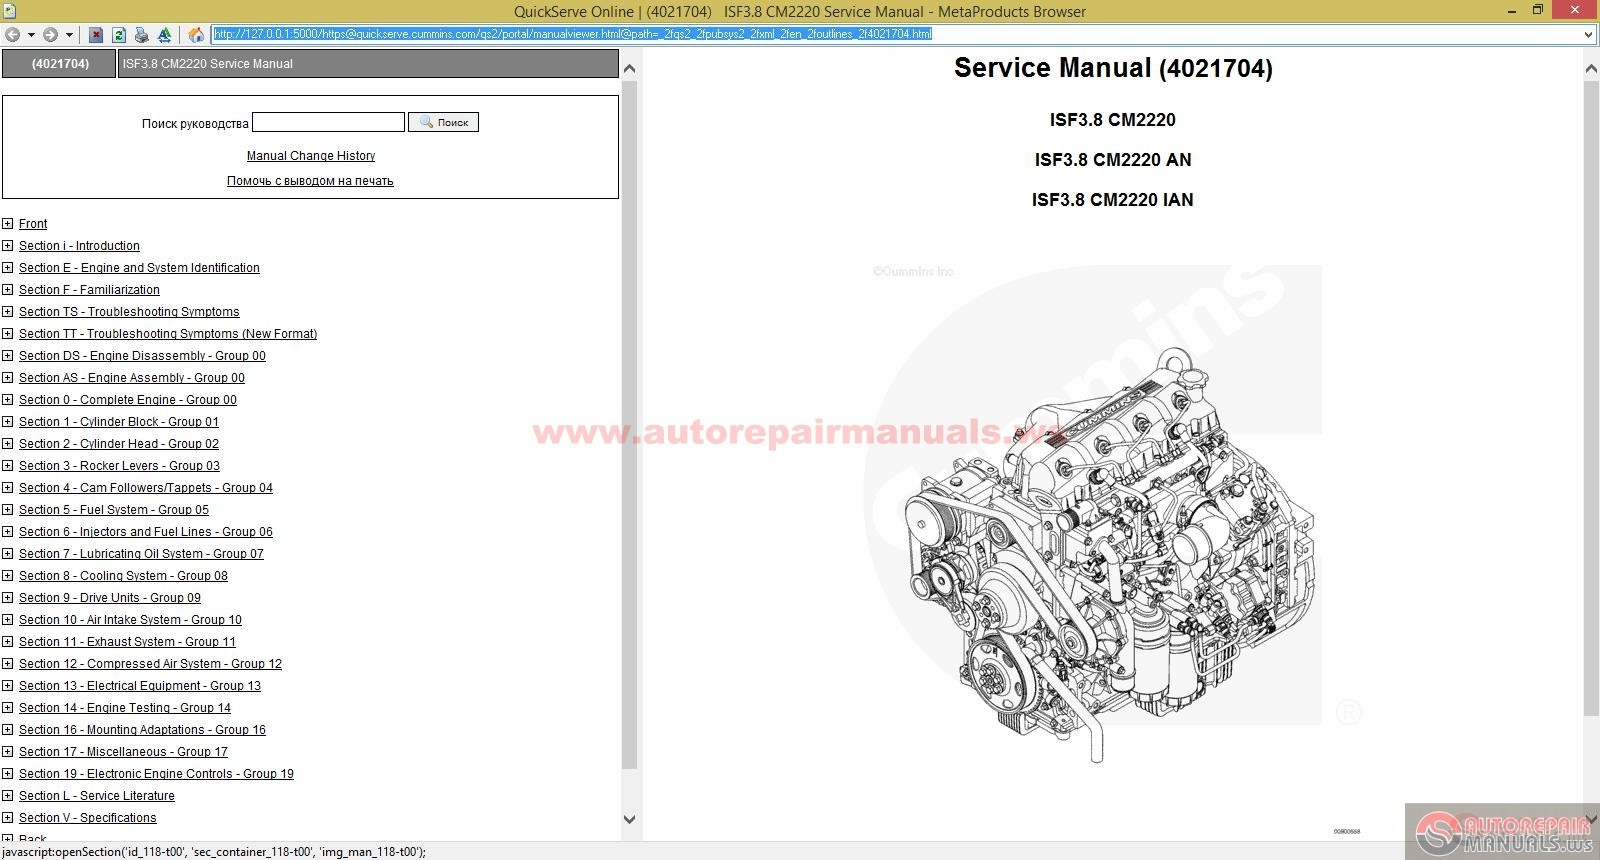 engine control module wiring diagram with Cummins Isf3 8 Cm2220 Service Manual on Wiring Diagram For A Bench Grinder likewise 1554306 2000 Ls1 Corvette Accelerator Pedal Pin Out moreover Wiring diagrams besides Dodge Blower Motor Resistor Harness furthermore Ford E Series E 250 1995 Fuse Box Diagram.